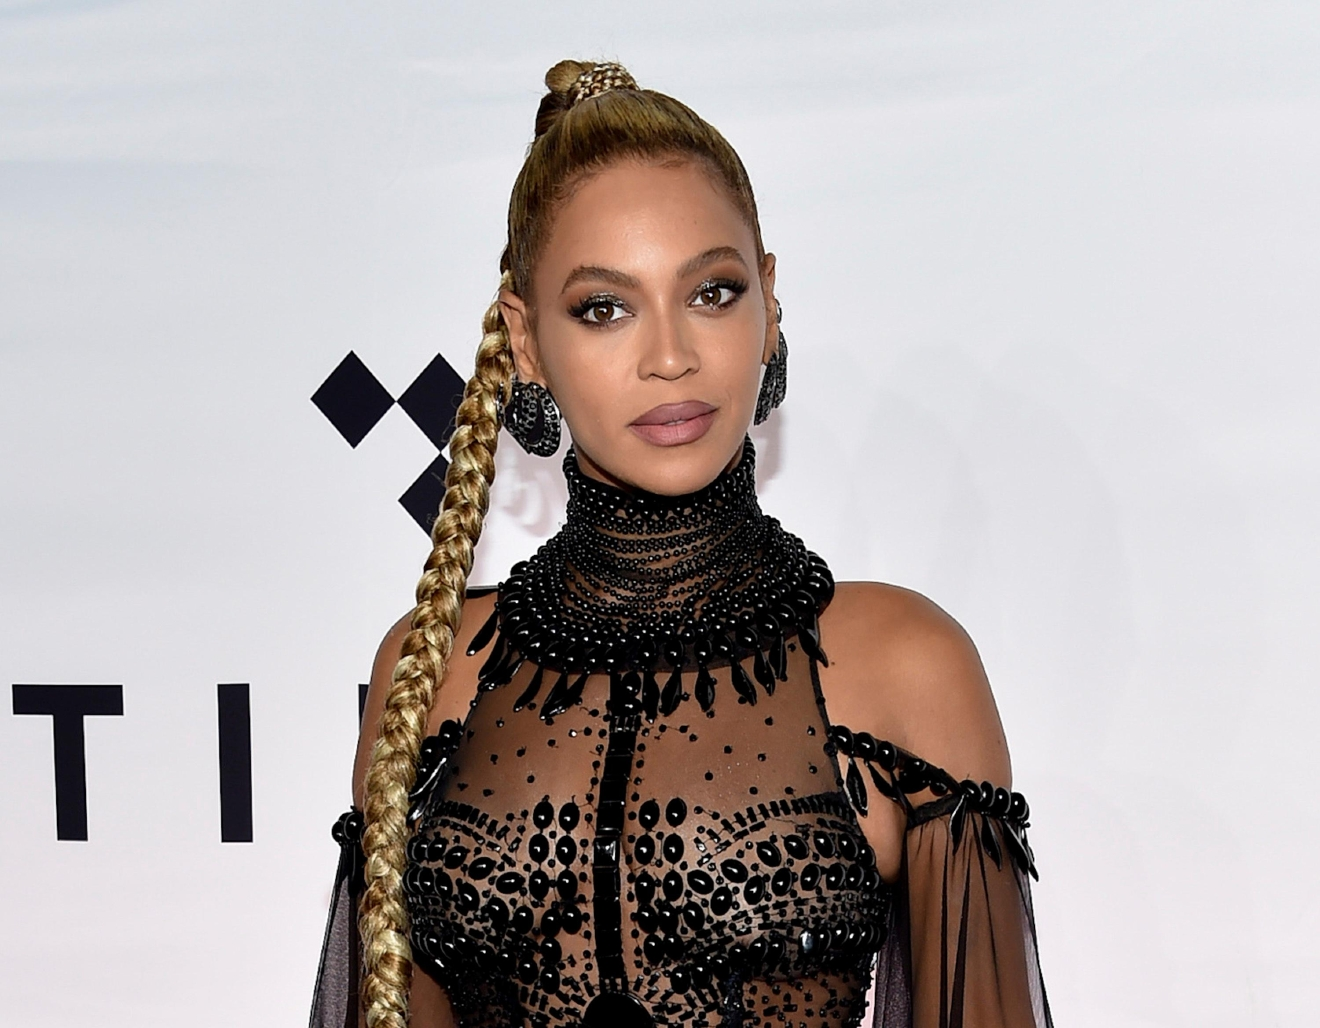 "FILE - In this Oct. 15, 2016, file photo, singer Beyonce Knowles attends the Tidal X: 1015 benefit concert in New York. Beyonce set a record for earning Grammy nominations, announced Tuesday, Dec. 6, in the rock, pop, R&B and rap categories in the same year with her diverse album, ""Lemonade."" Only two other acts have earned nominations in those same four categories, Paul McCartney and Janet Jackson, but never in the same year. (Photo by Evan Agostini/Invision/AP, File)"